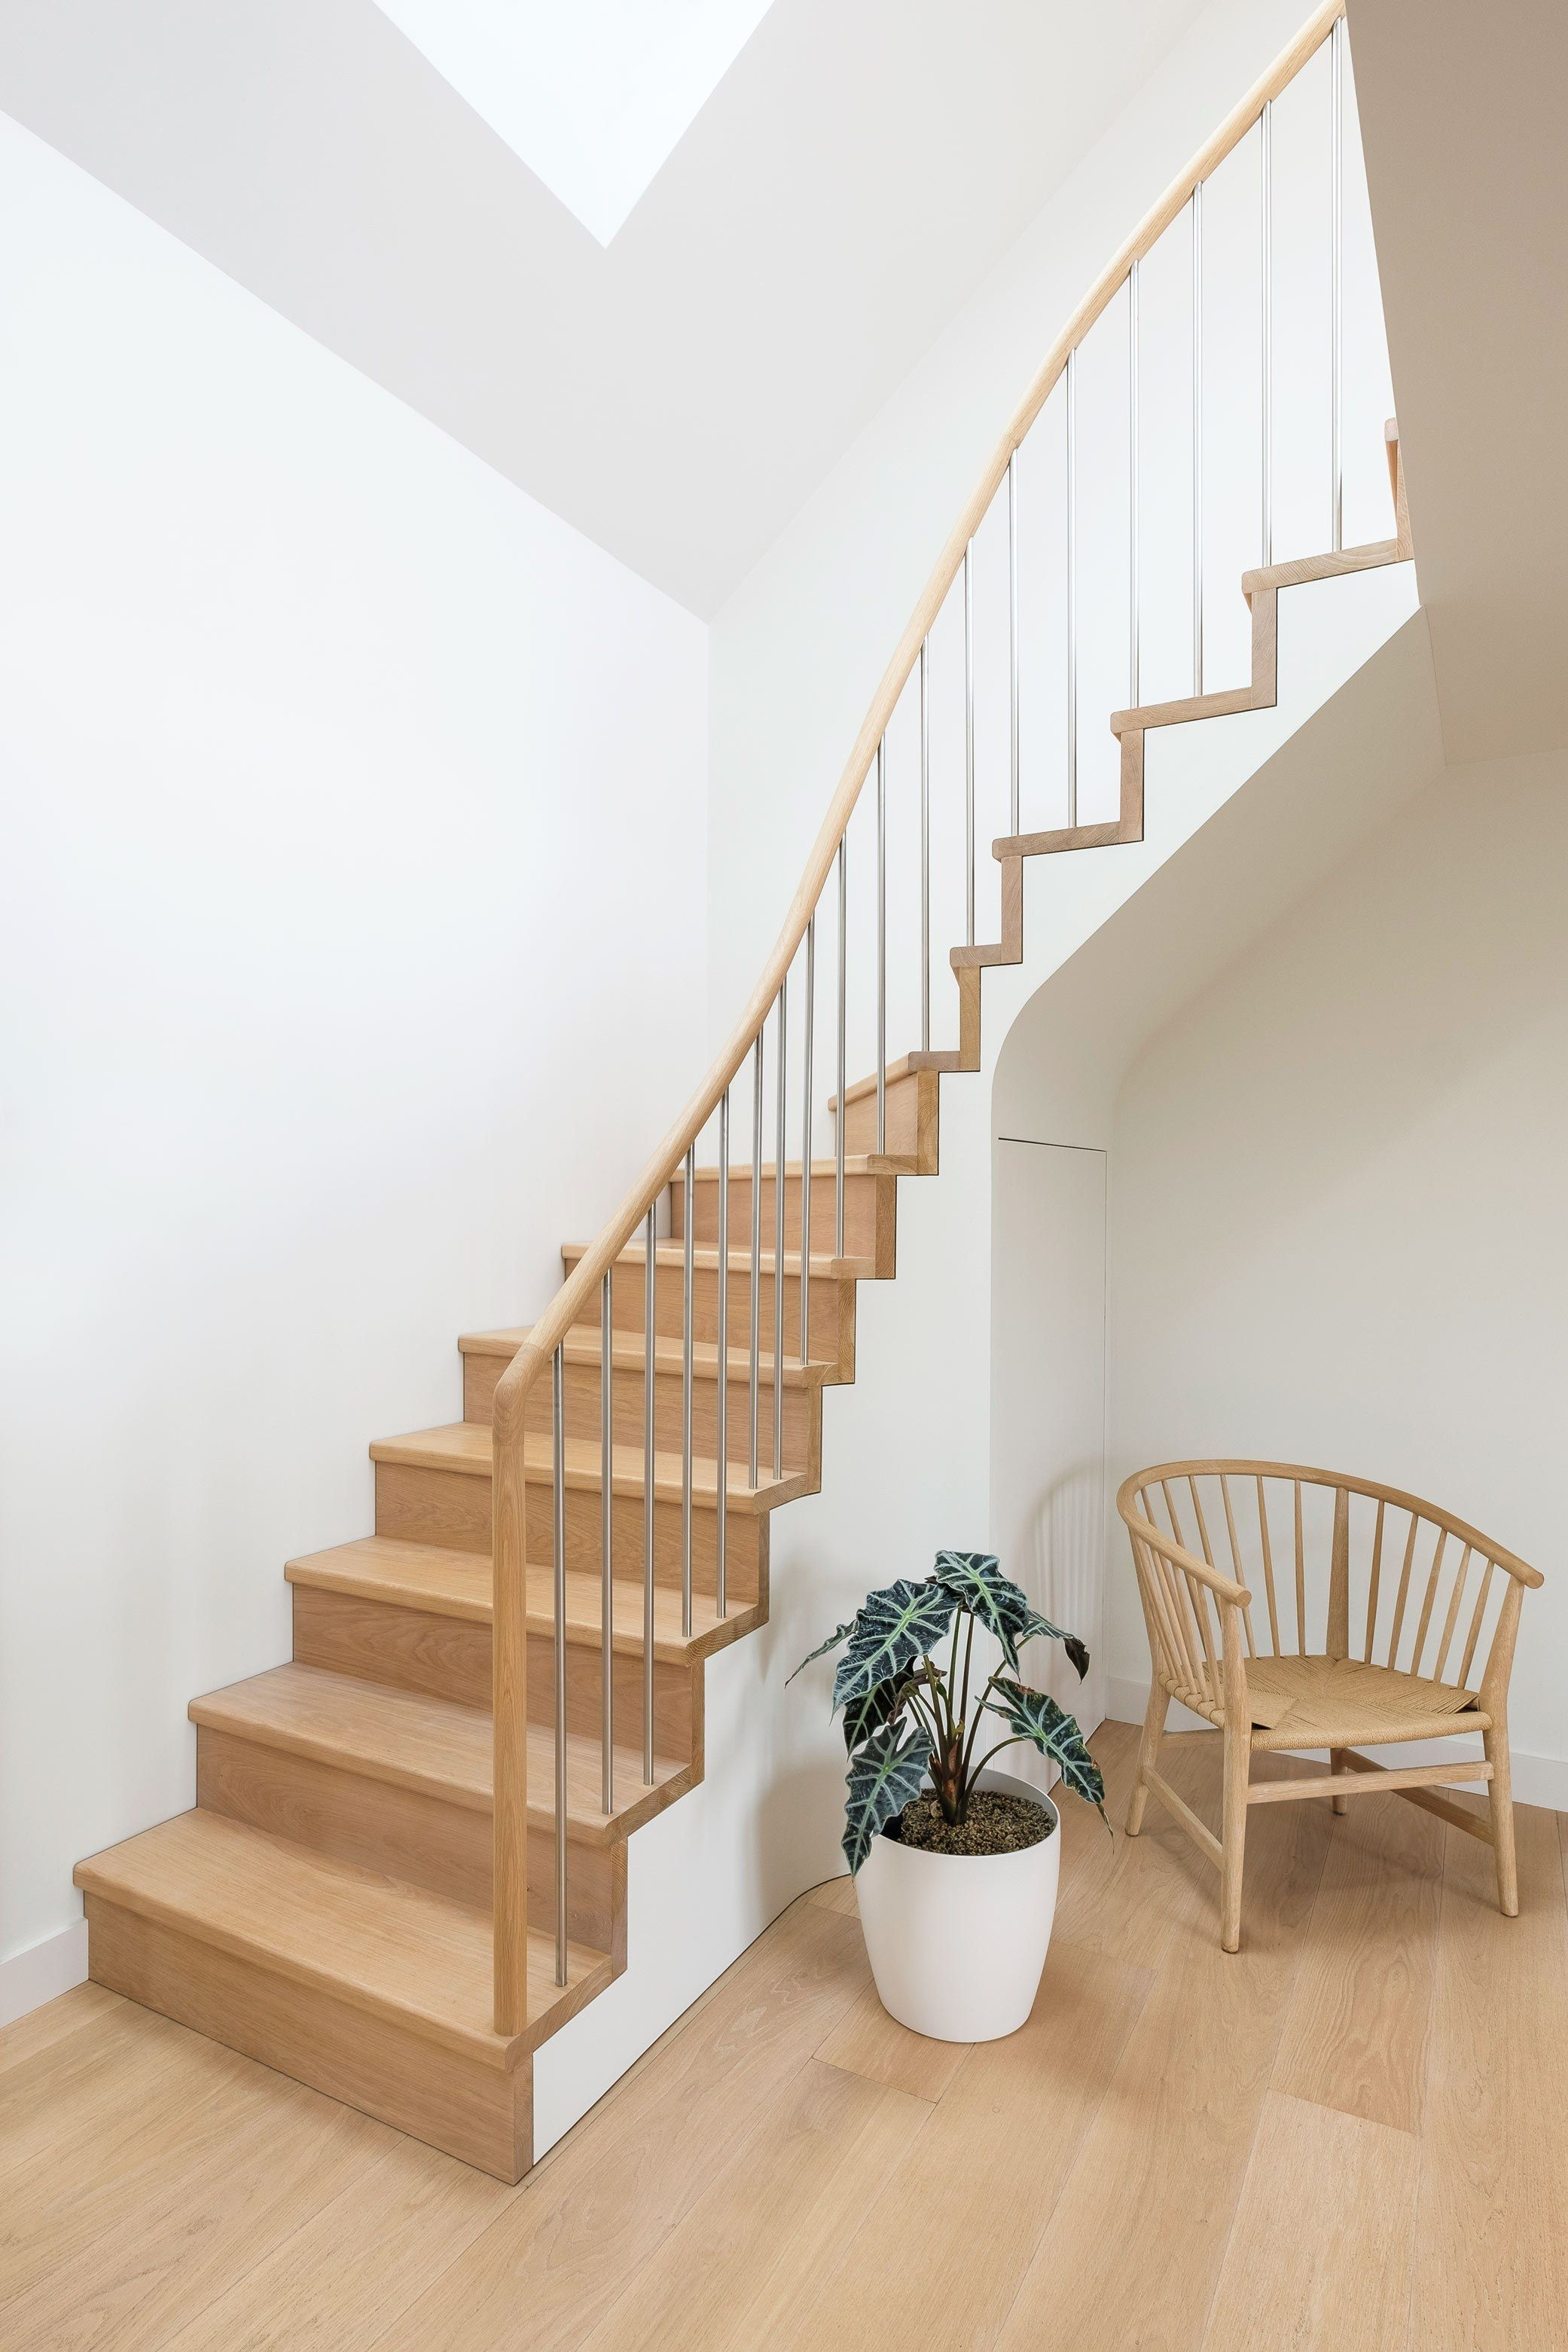 Oak Staircase with stainless steel balustrade spindle, curved oak handrail and white understructure. Danish designed oak chair. White walls and potted plant.